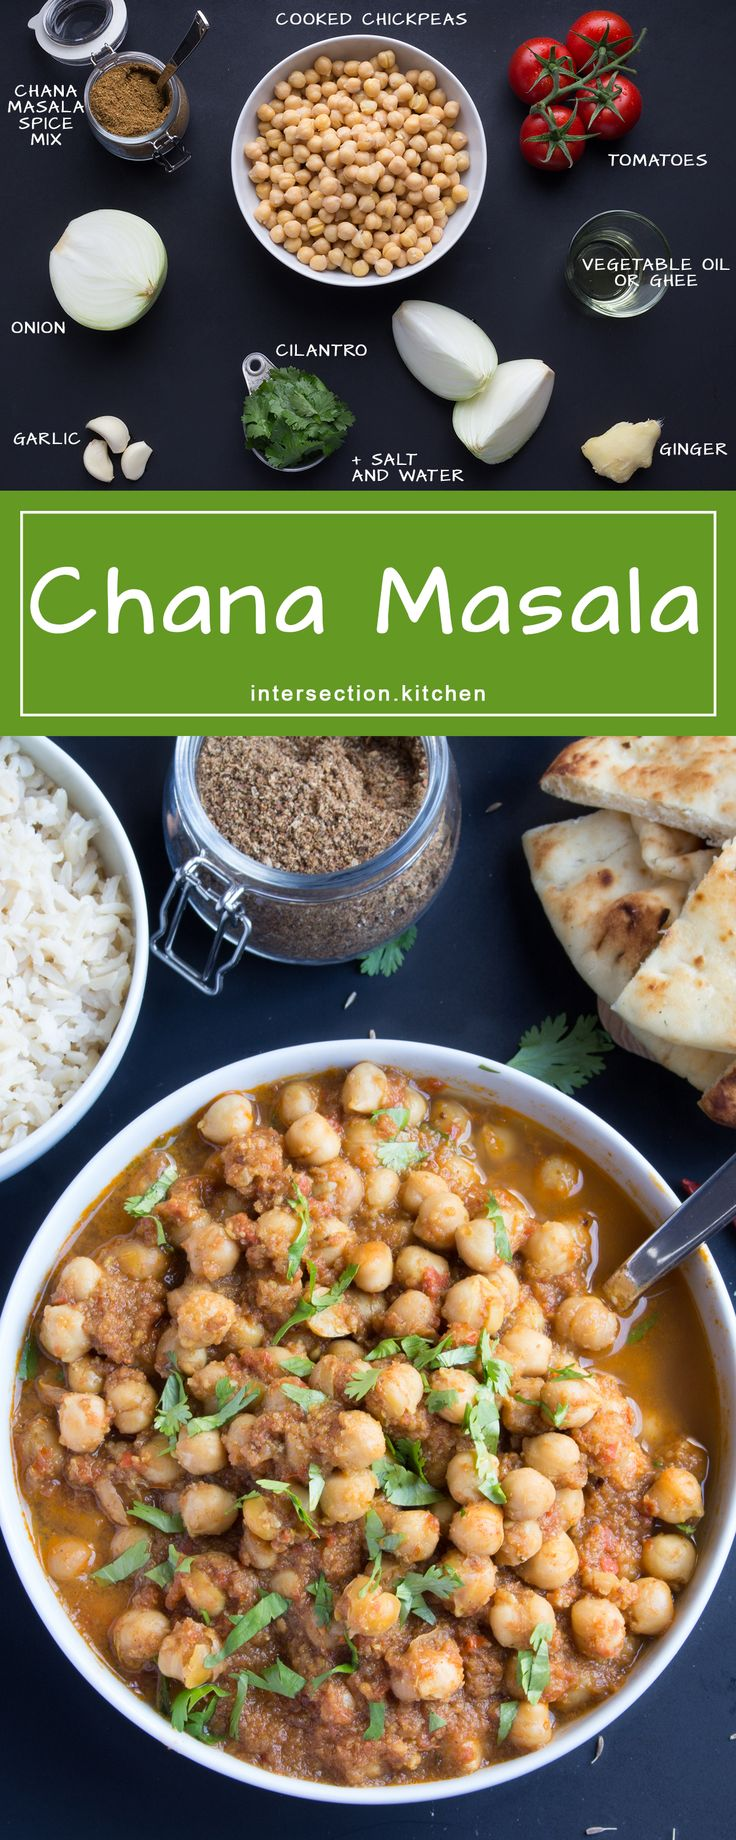 Chana Masala.  Easy and flavourful chickpea curry in less than an hour. #chana-masala #dinner #curry #chickpeas #vegan